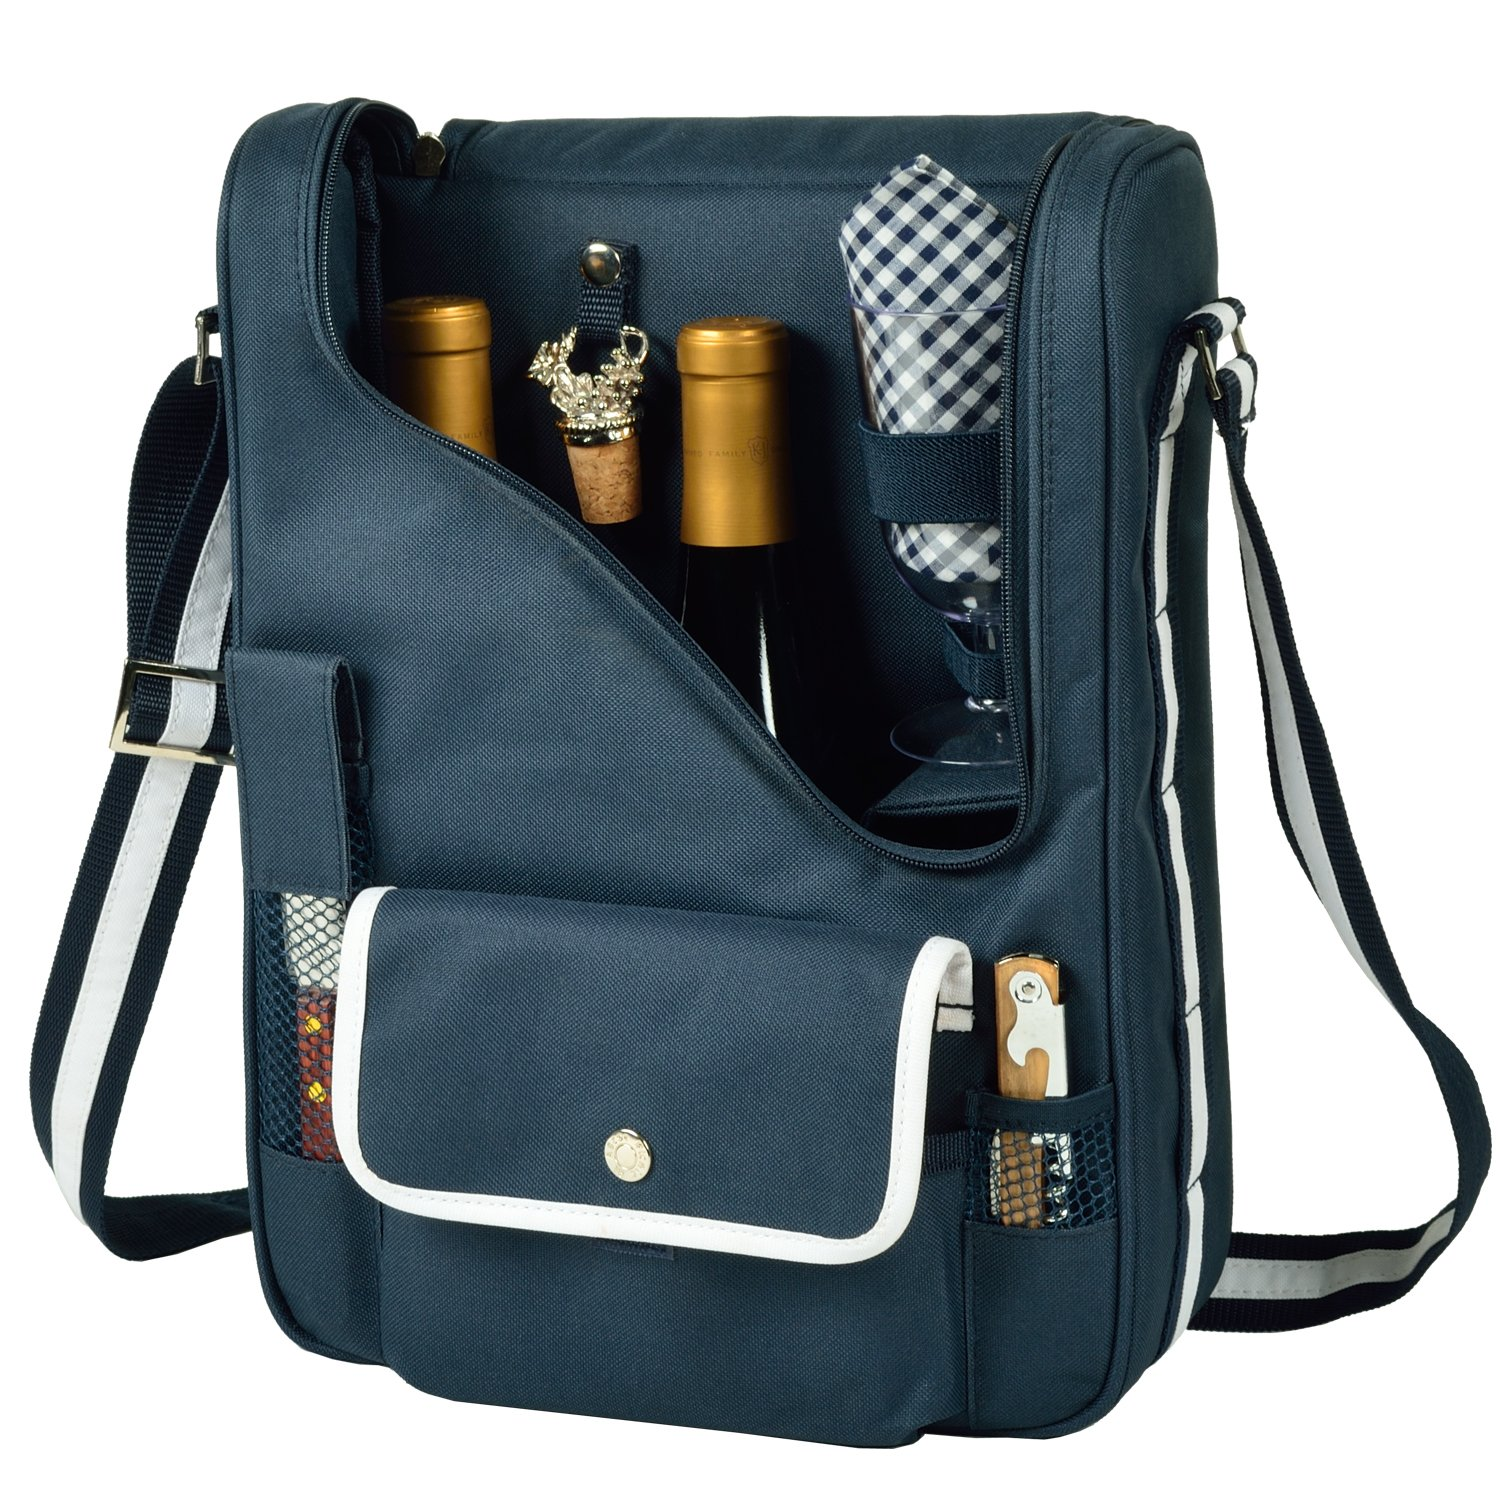 Picnic at Ascot Original Insulated Wine and Cheese Cooler Bag - Designed, Assembled & Quality Approved in the USA by Picnic at Ascot